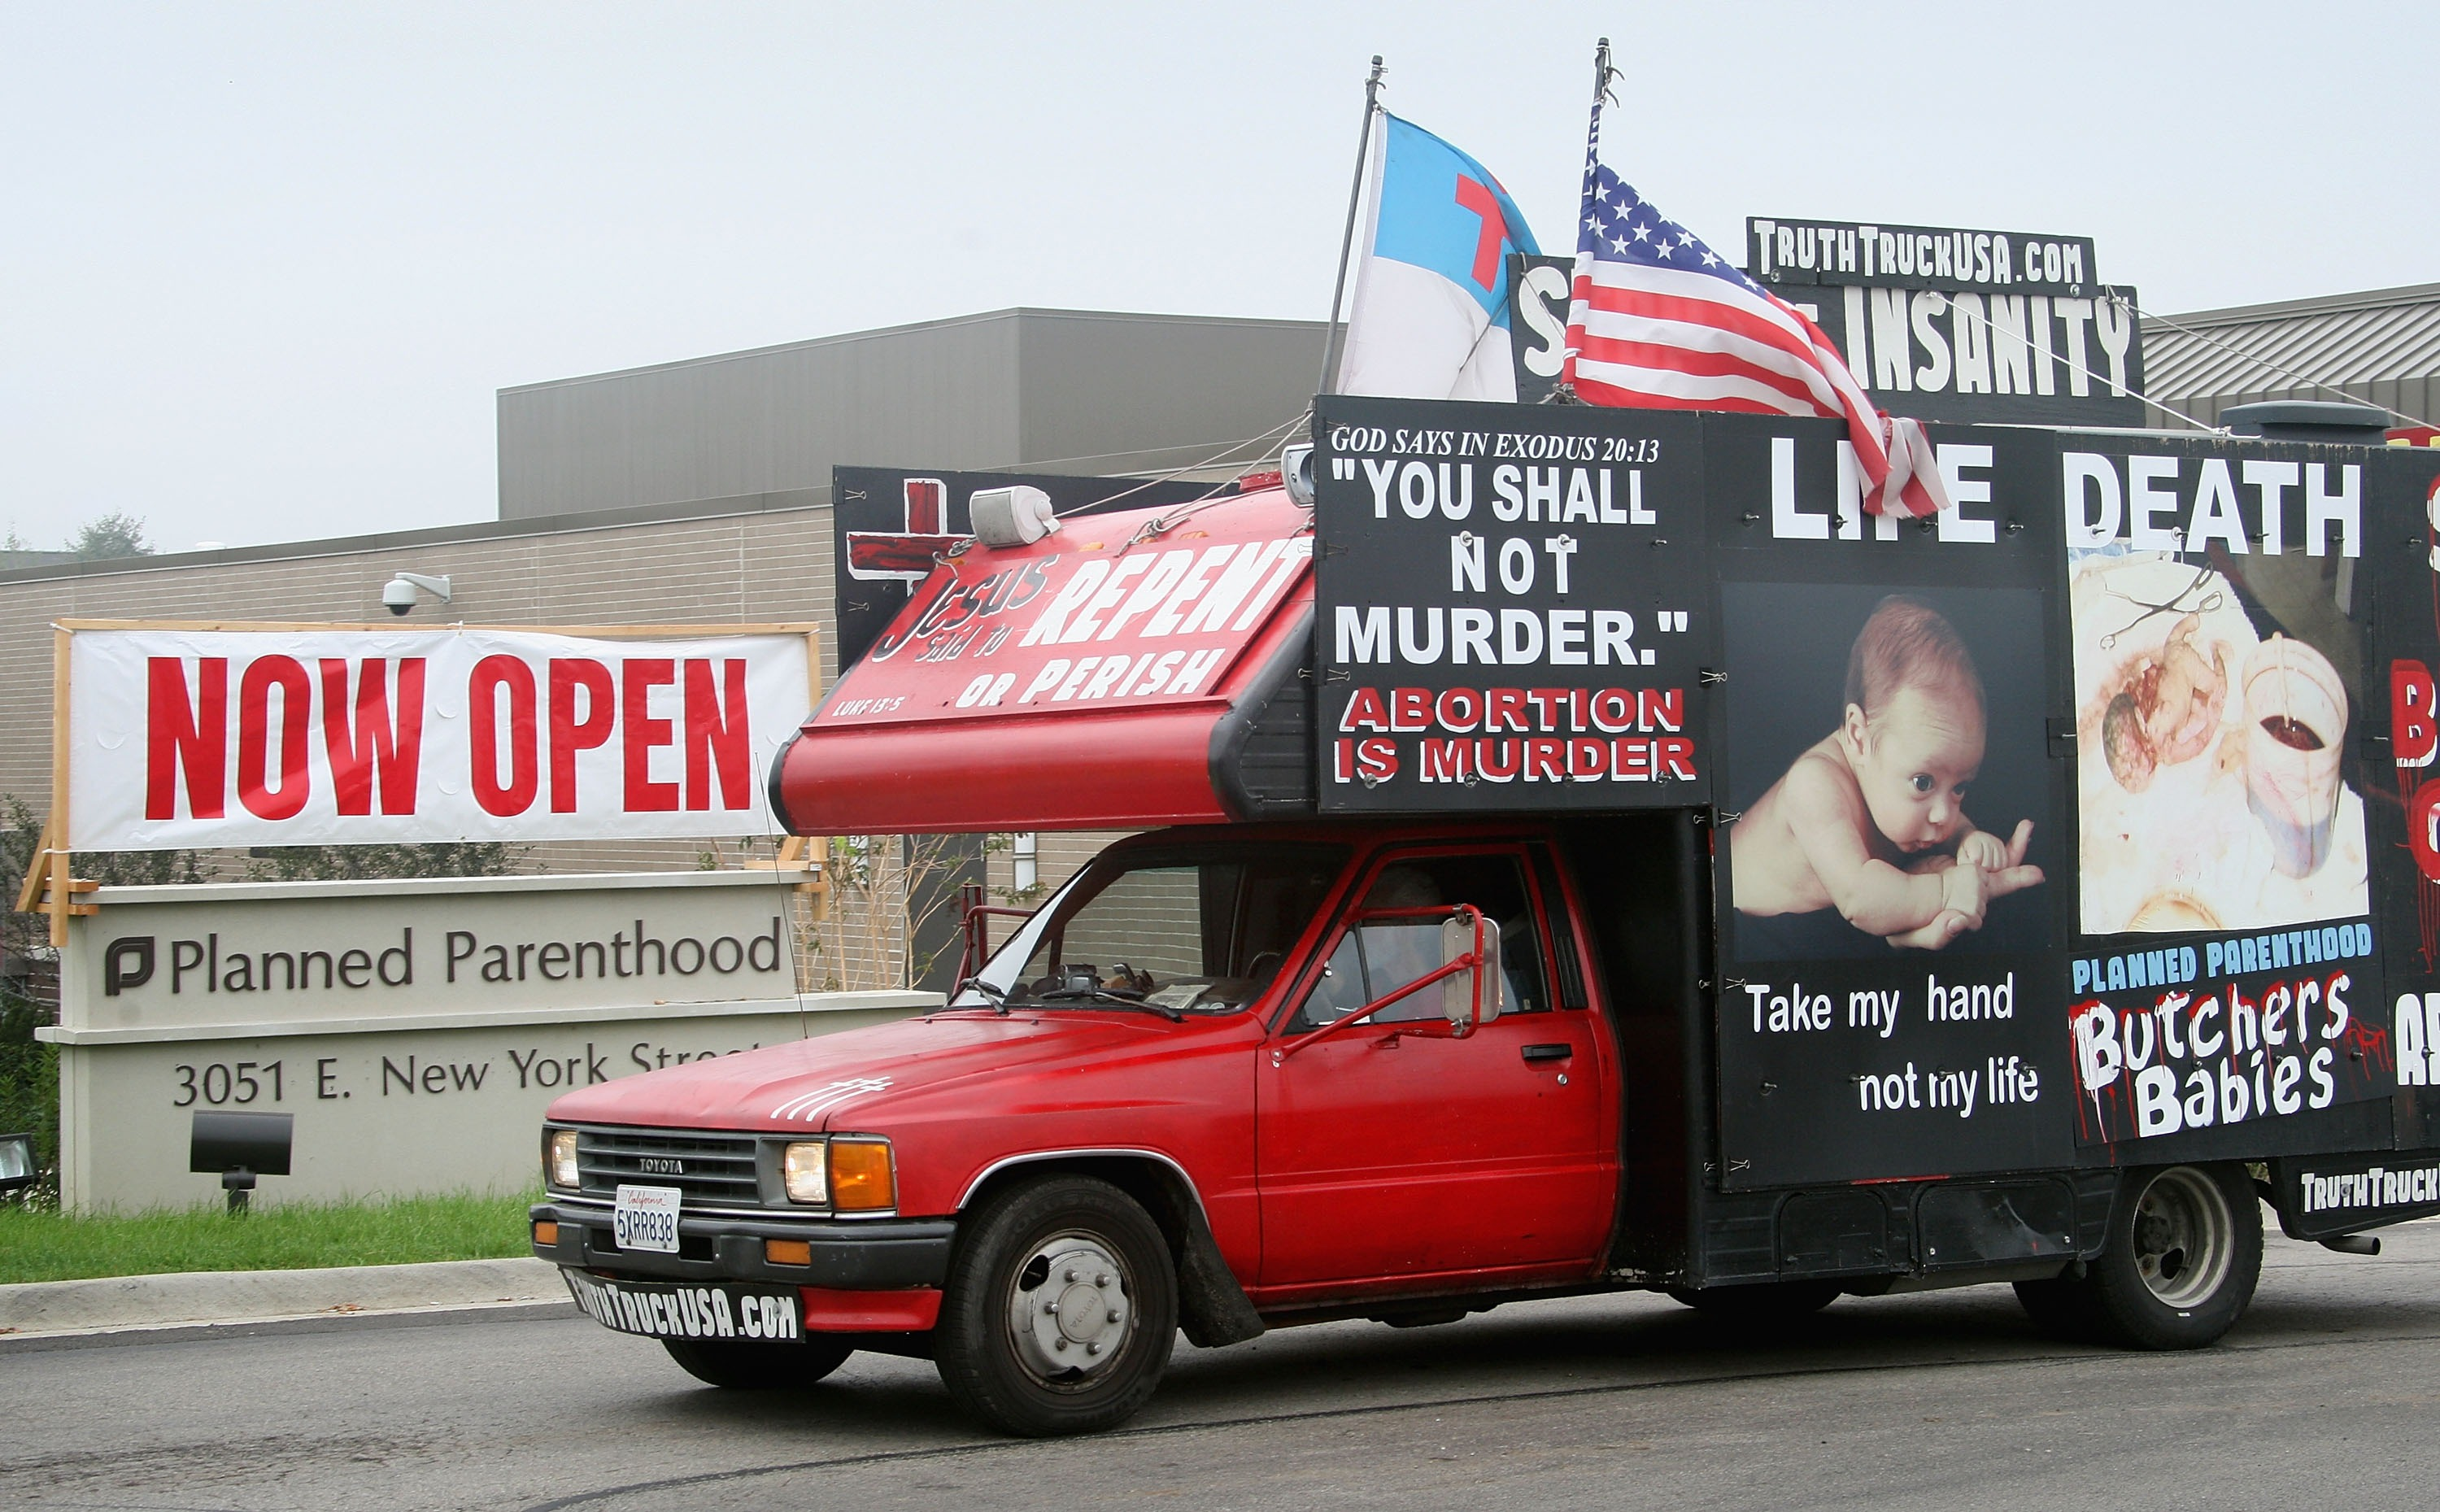 A truck covered with anti-abortion messages is used to protest the opening of a Planned Parenthood clinic in Aurora, Illinois on Oct. 2, 2007.